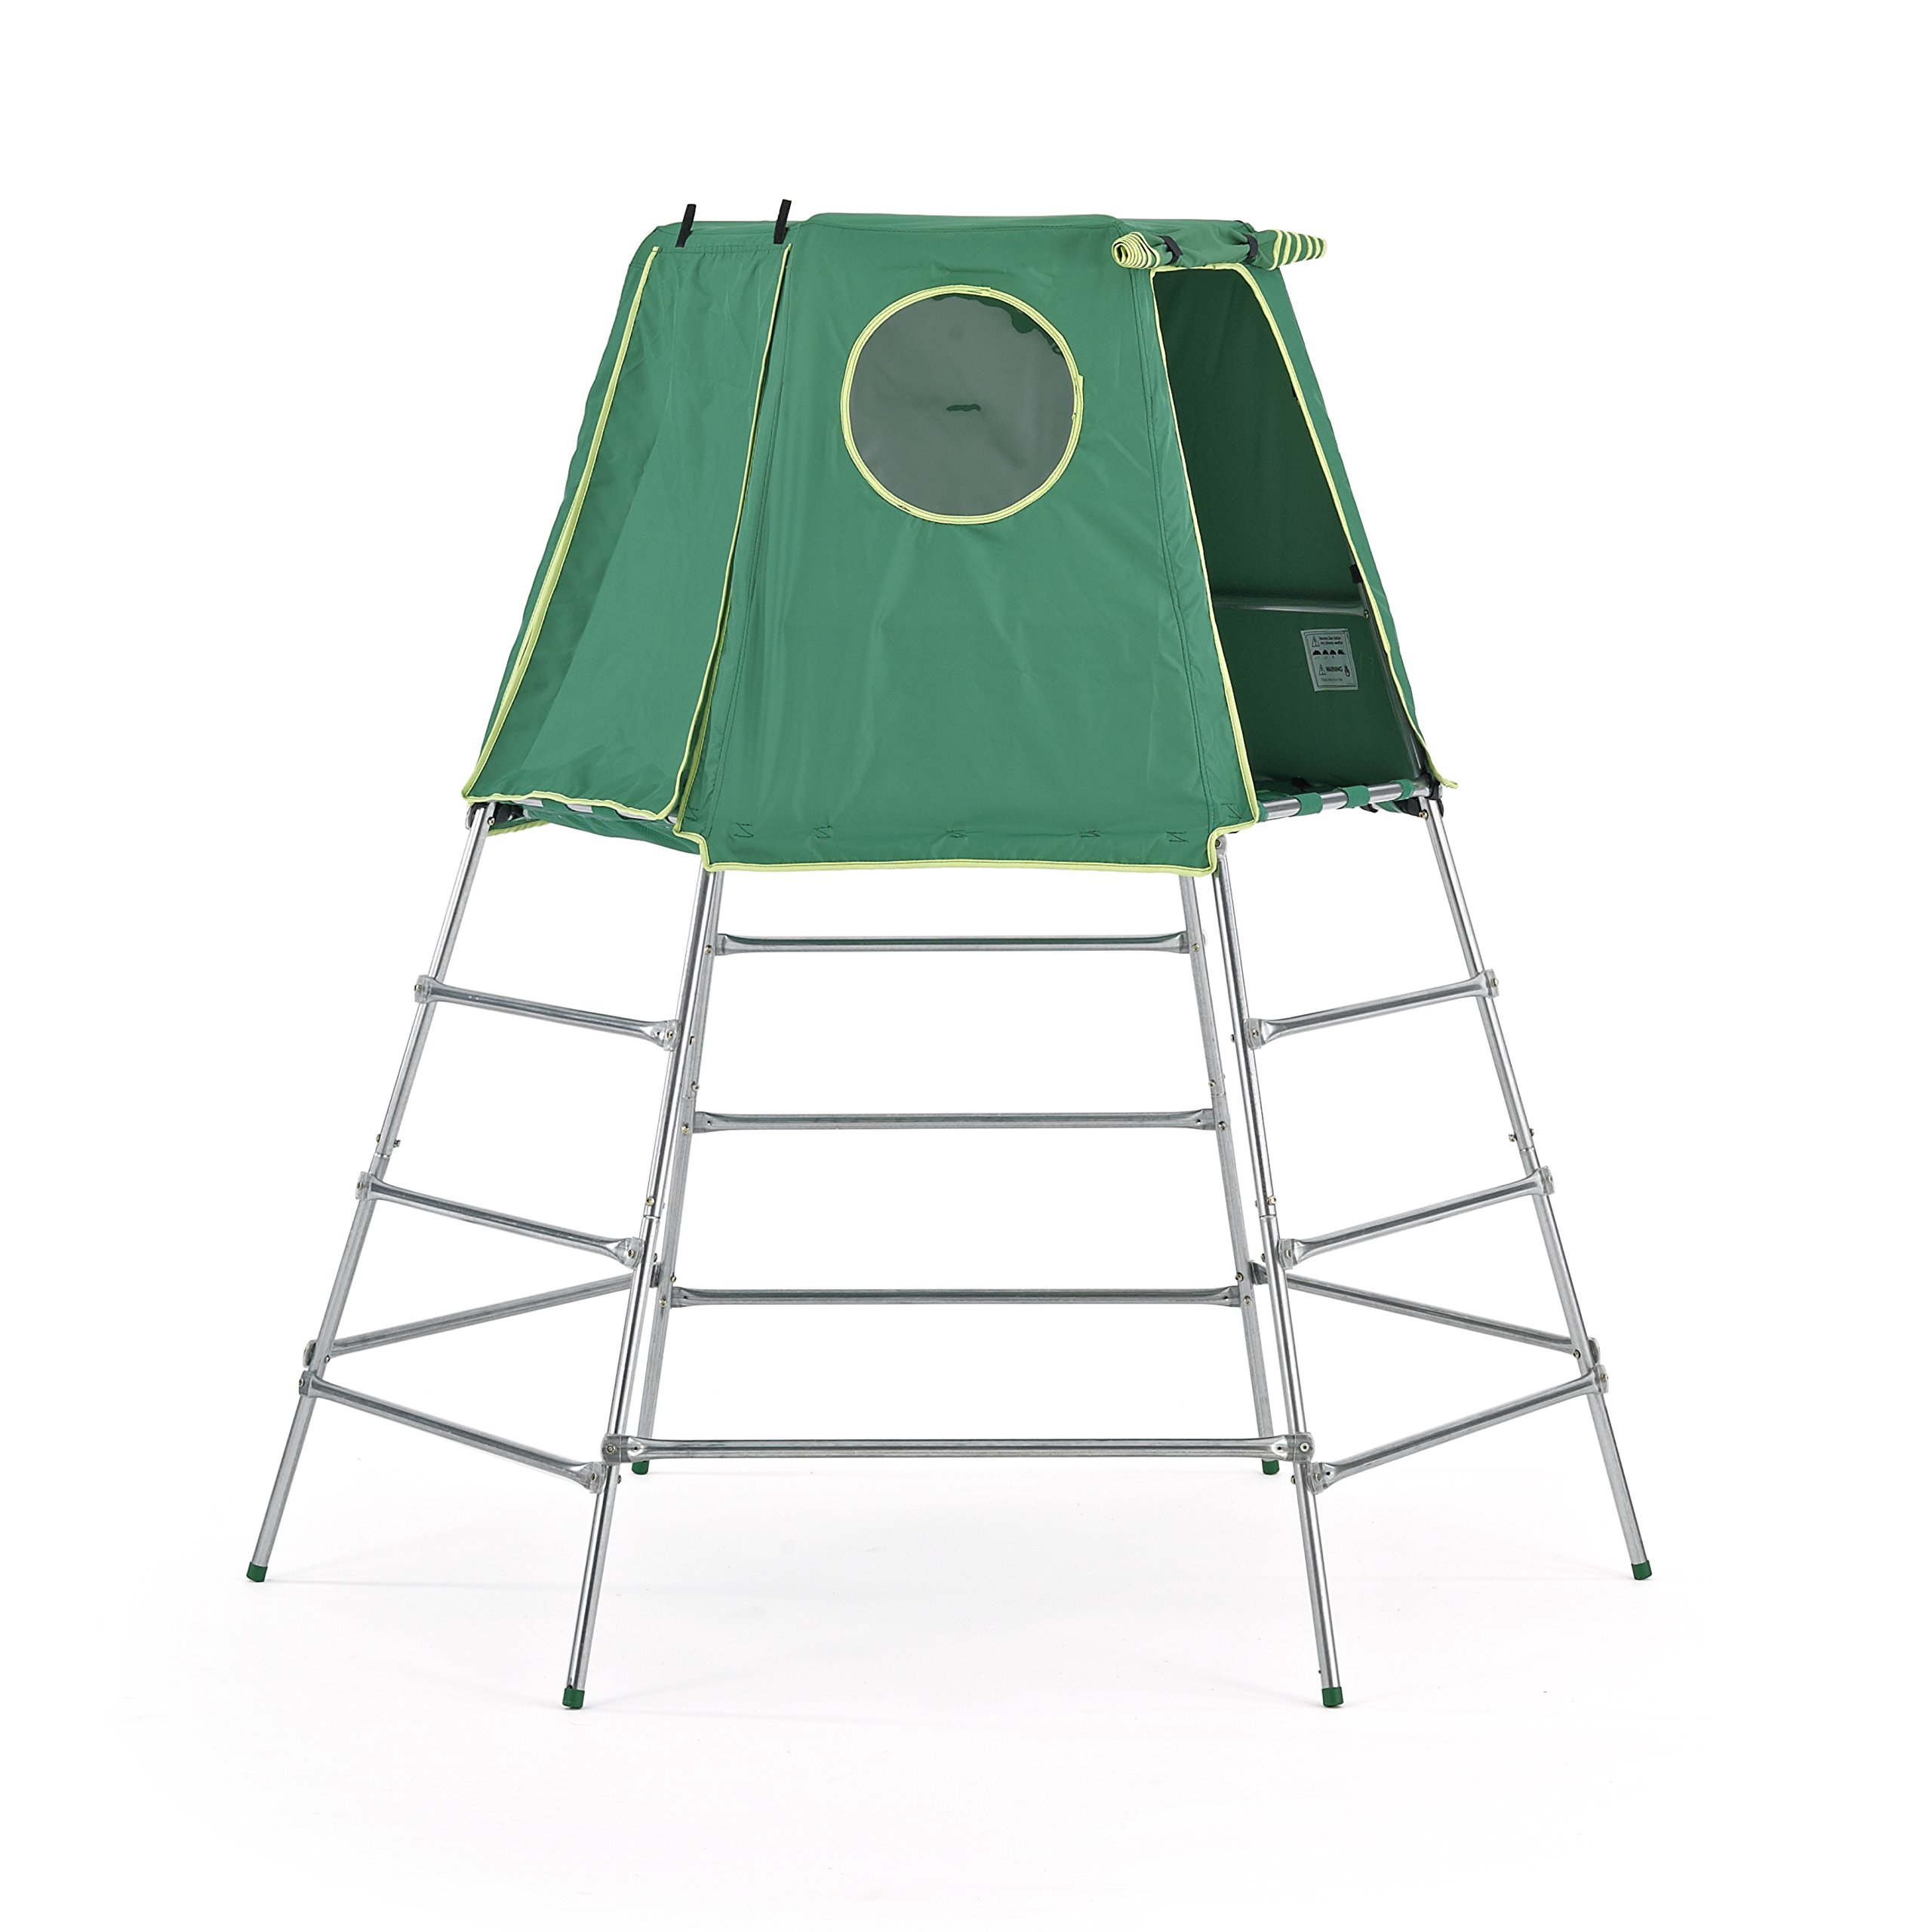 Sports & Entertainment Energetic Free Shipping Collapsible Portable Tent For Children Outdoor Sports Activity Toys Football Grid Kit Reputation First Soccer